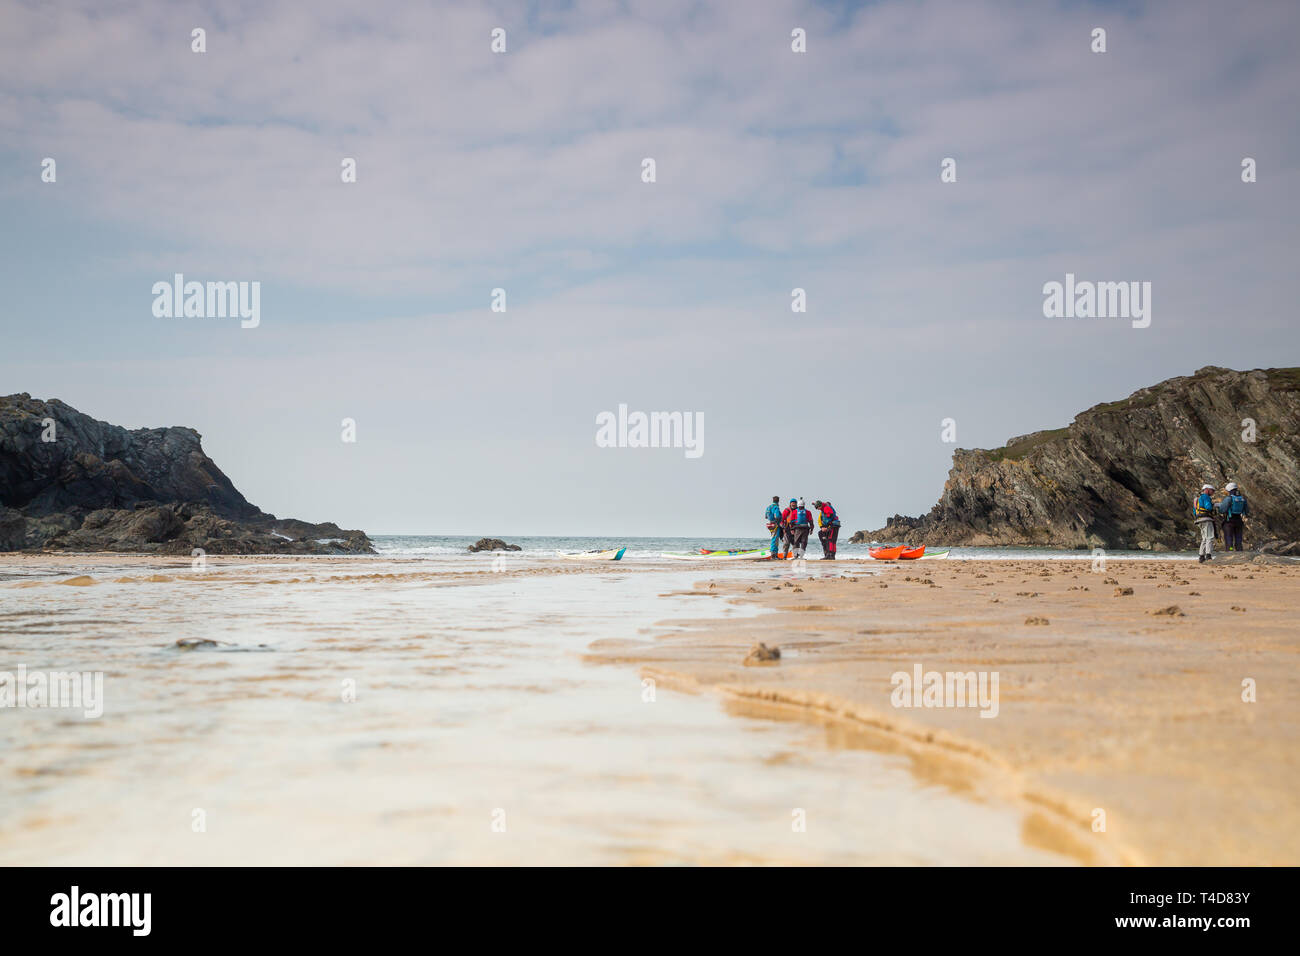 Landscape shot of group of adults preparing their kayaks on the beach off the Welsh coastline, Anglesey. - Stock Image